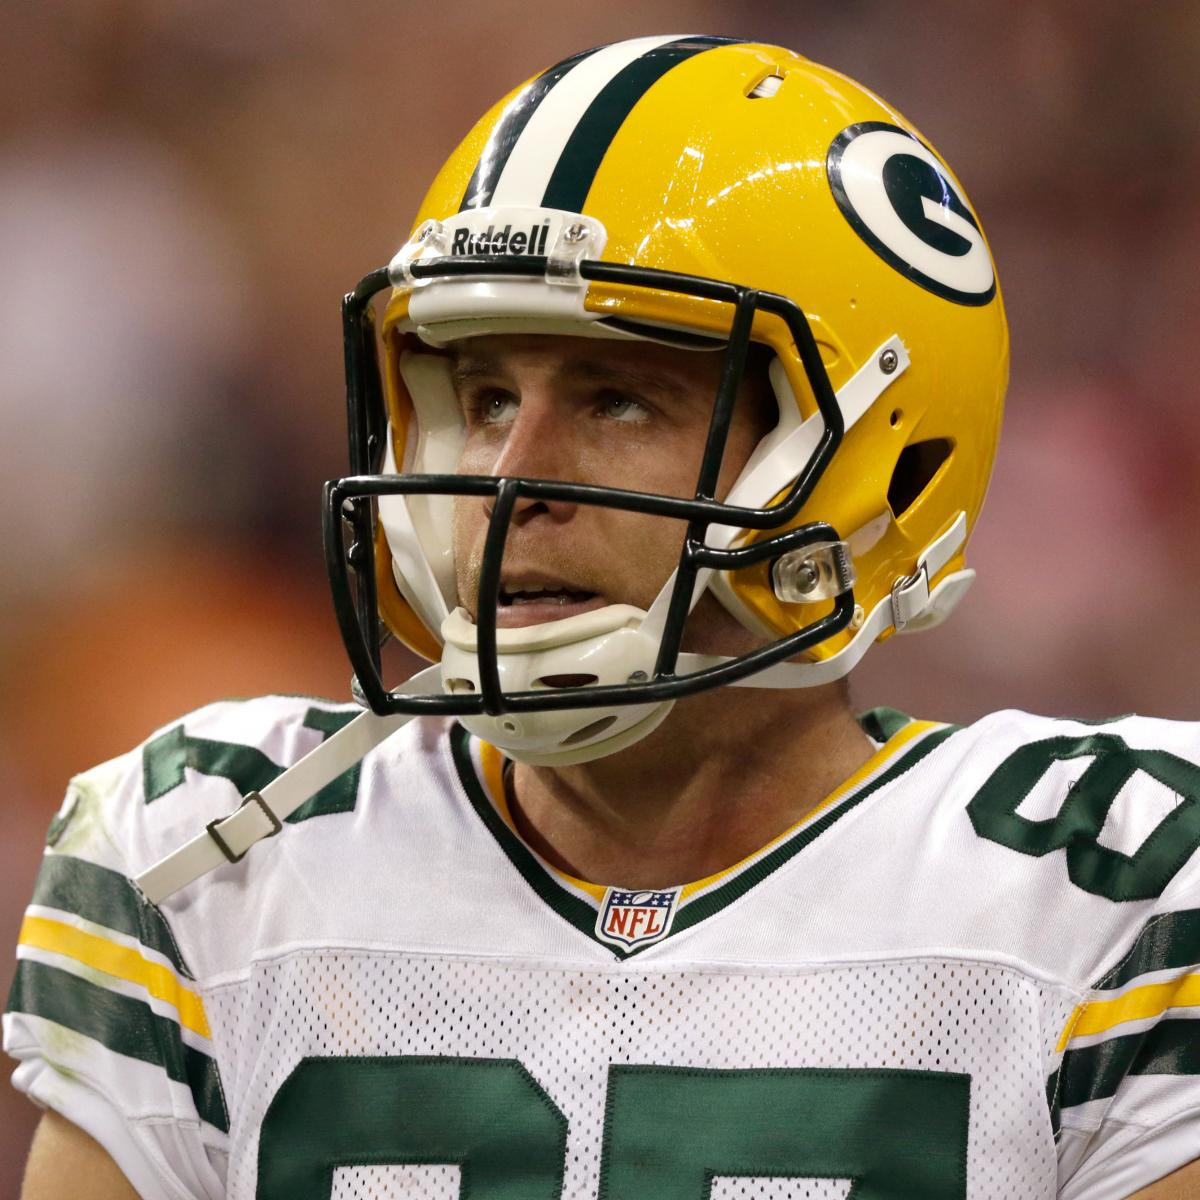 Get the latest news stats videos highlights and more about Oakland Raiders wide receiver Jordy Nelson on ESPNcom